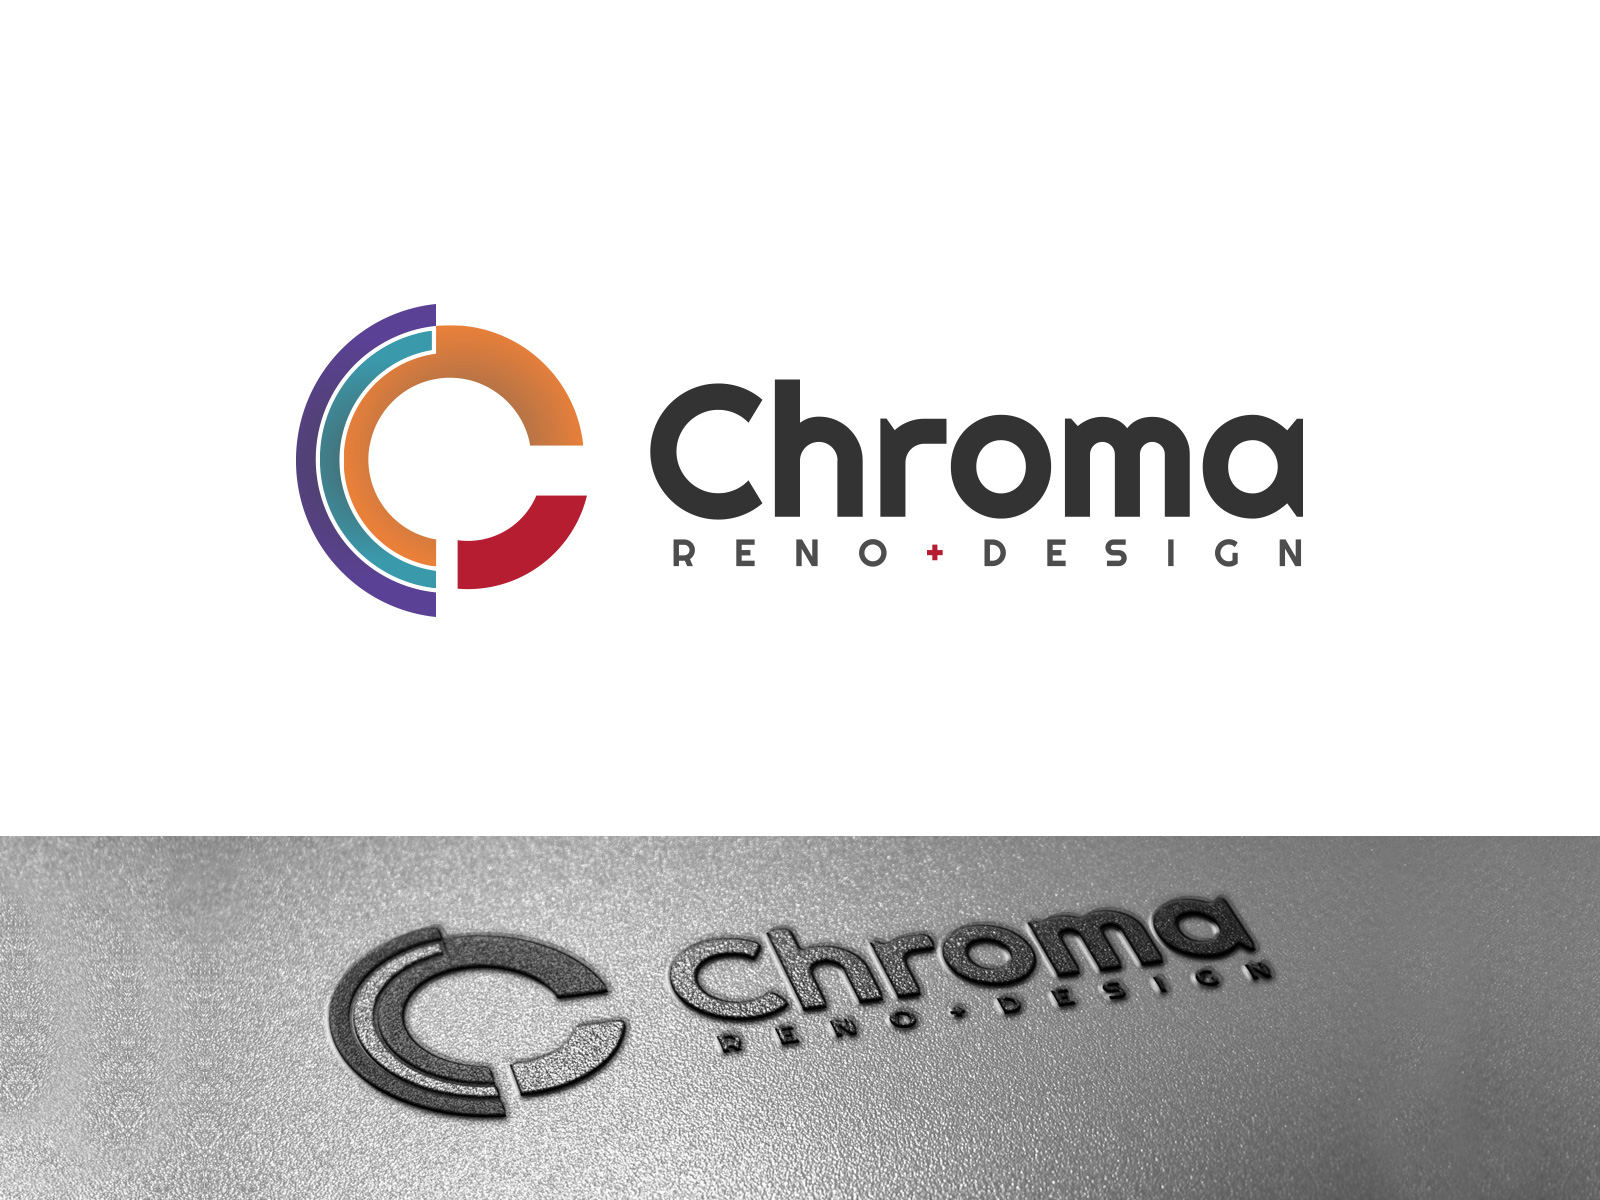 Logo Design by olii - Entry No. 166 in the Logo Design Contest Inspiring Logo Design for Chroma Reno+Design.